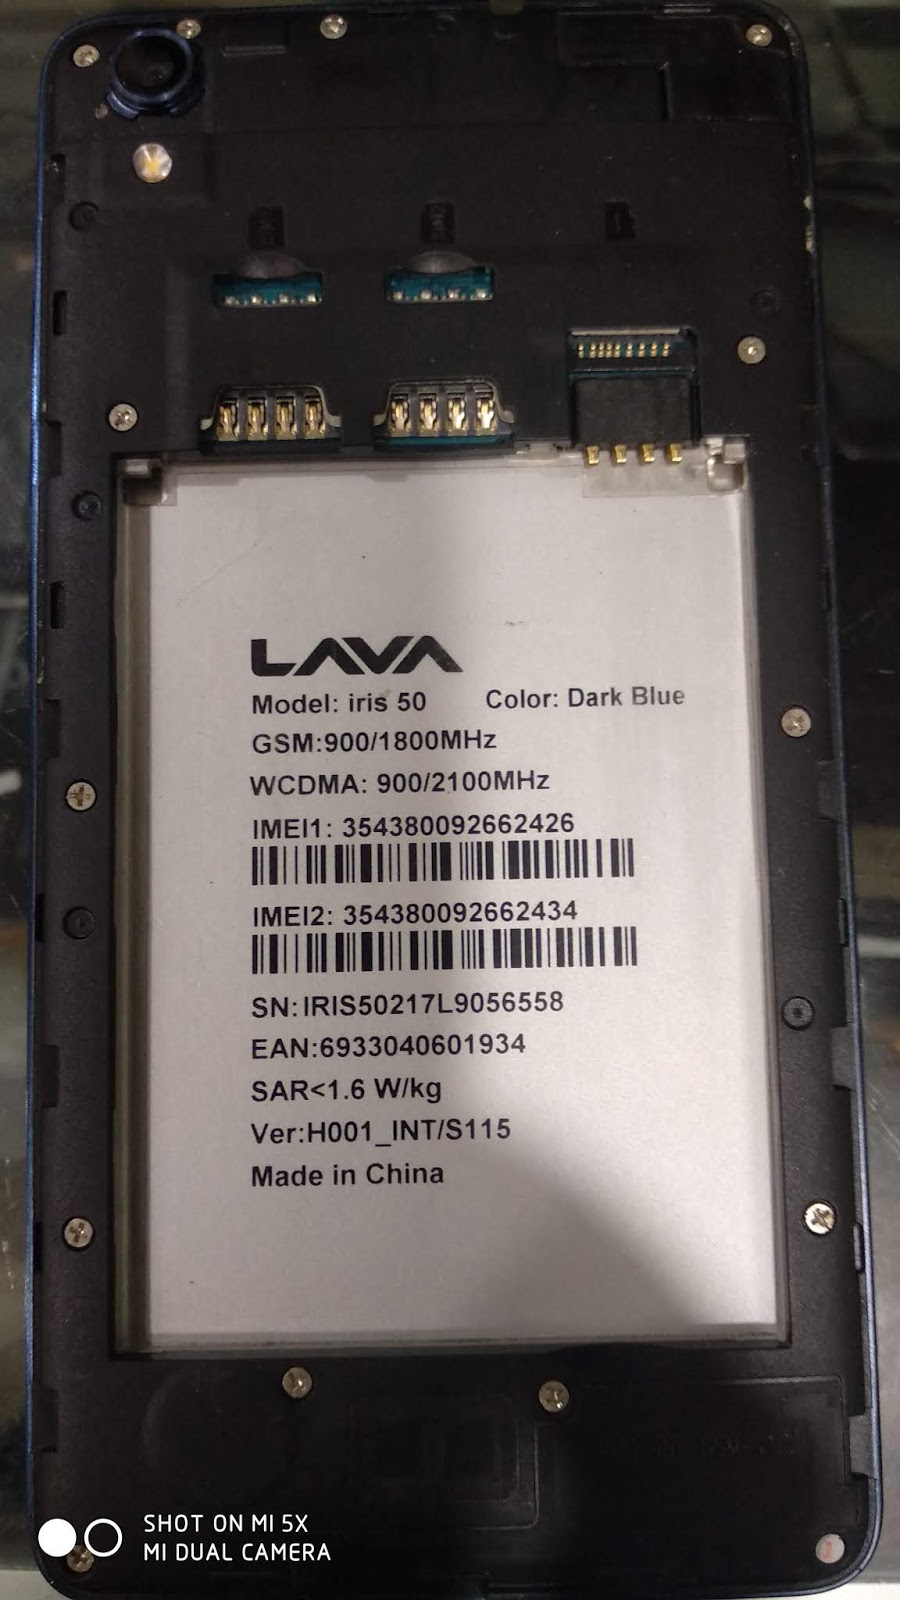 LAVA iris 50 Flash file 100% tested without password cm2